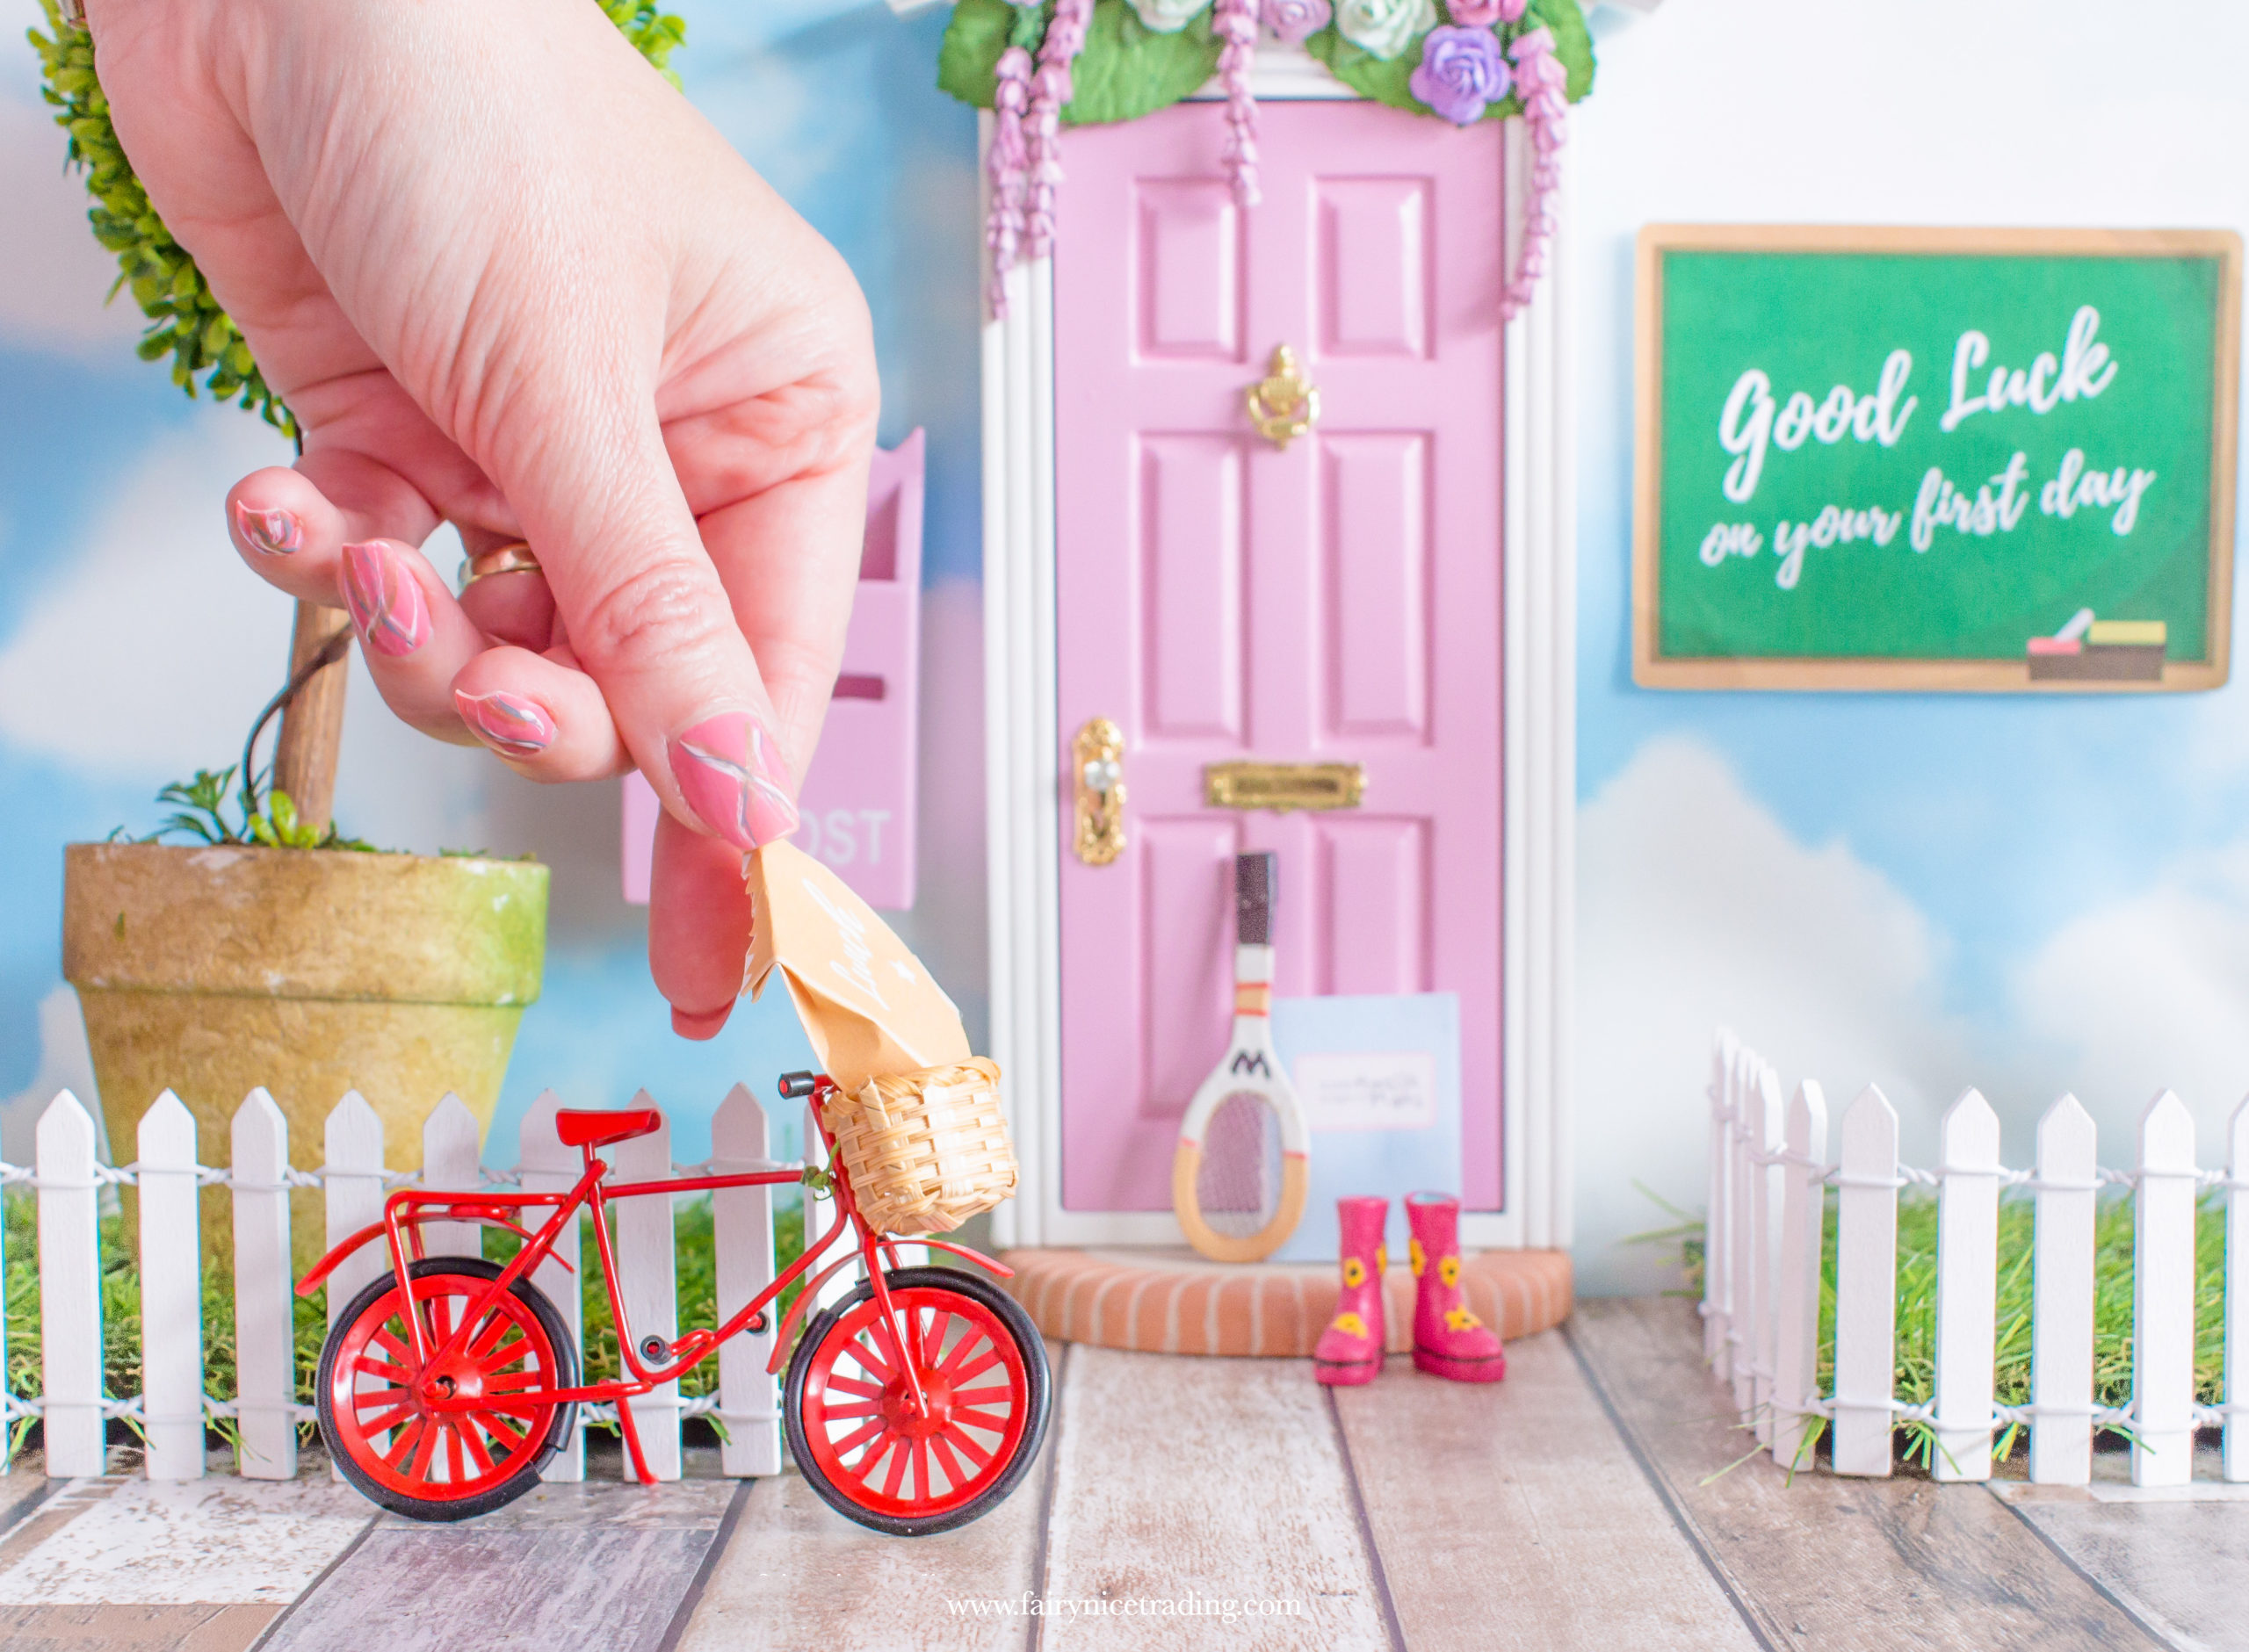 fairy door ideas for first day at school